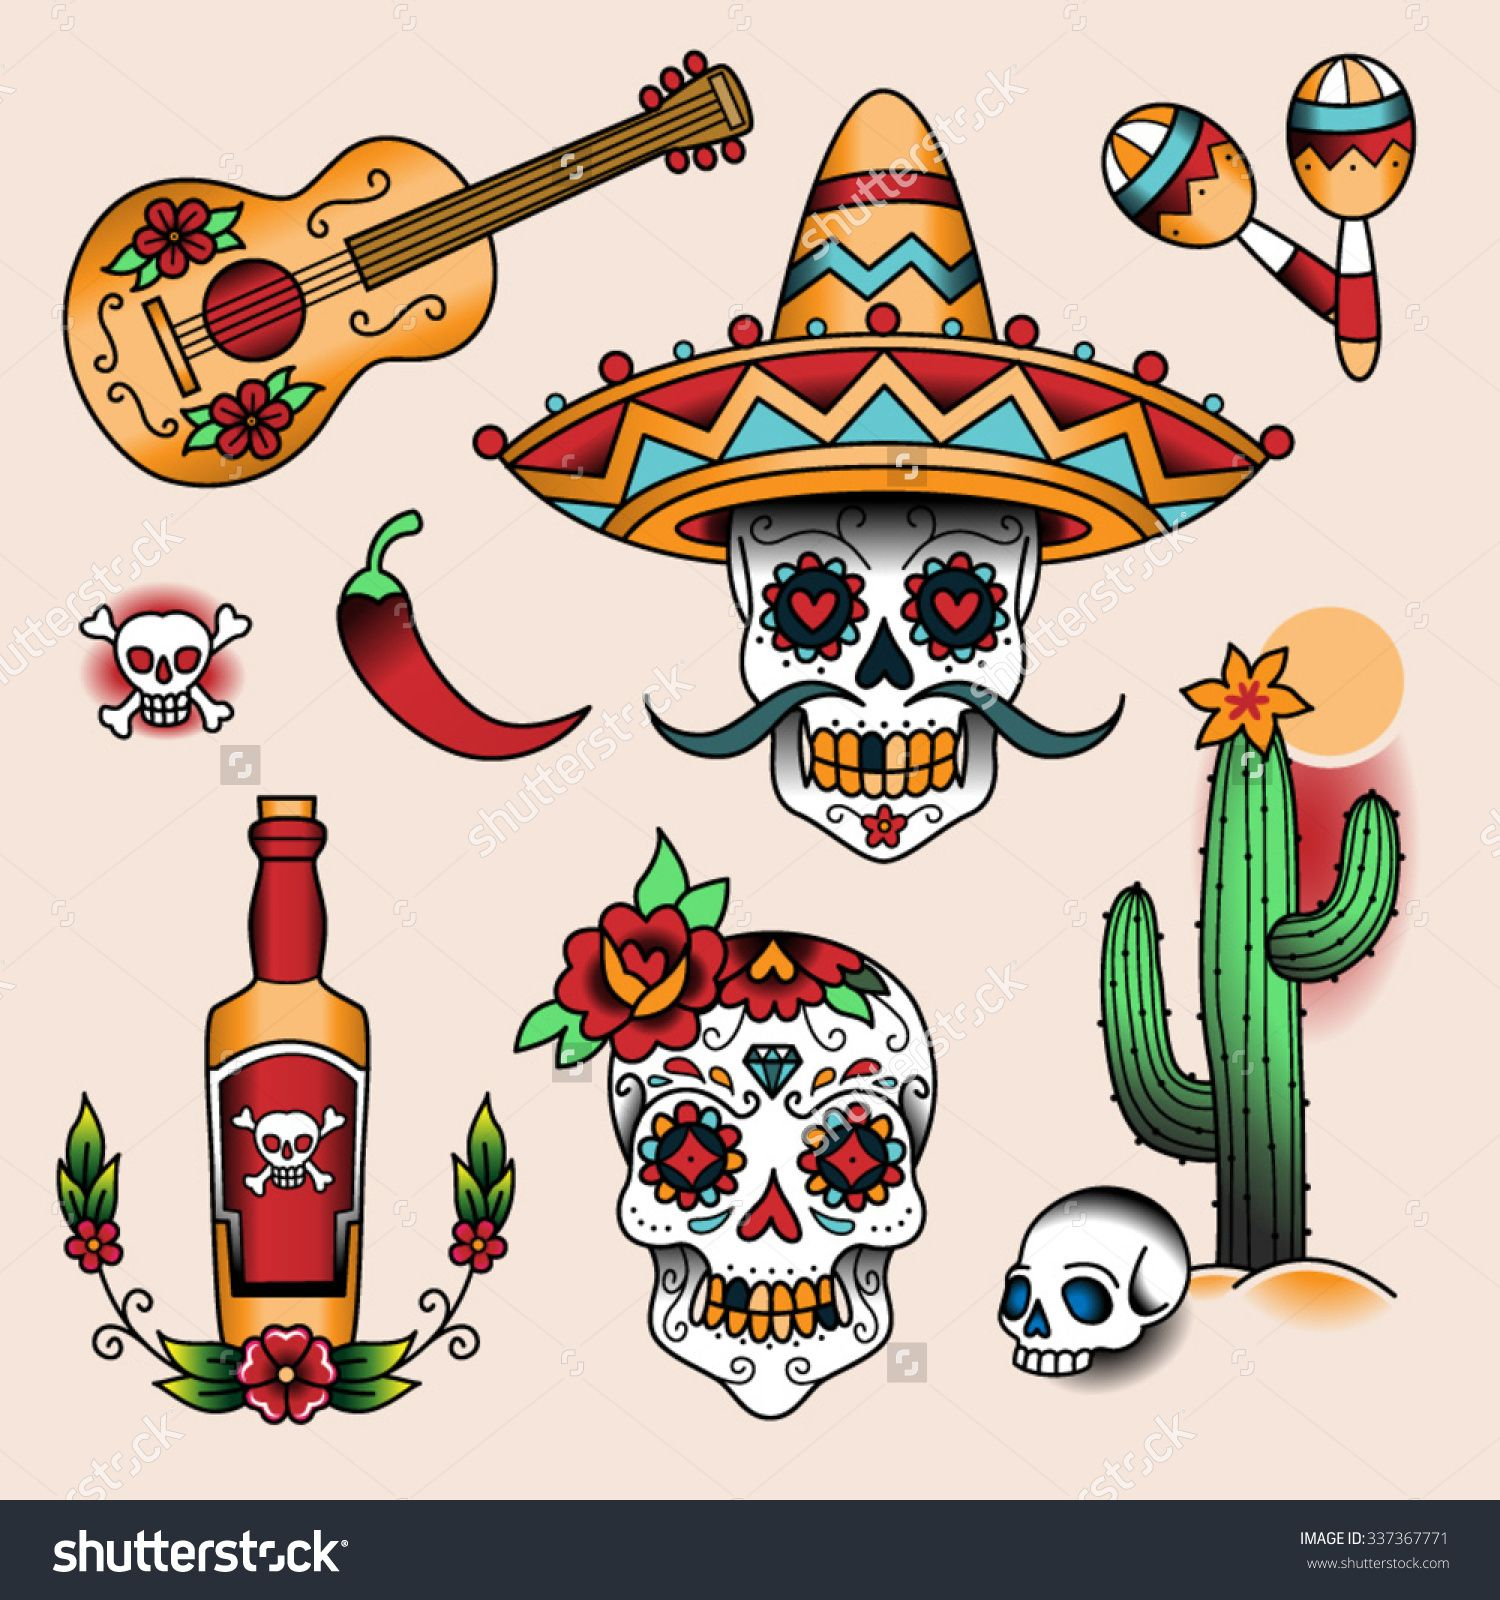 stock vector mexican symbols set of color tattoos in traditional vintage style. Black Bedroom Furniture Sets. Home Design Ideas